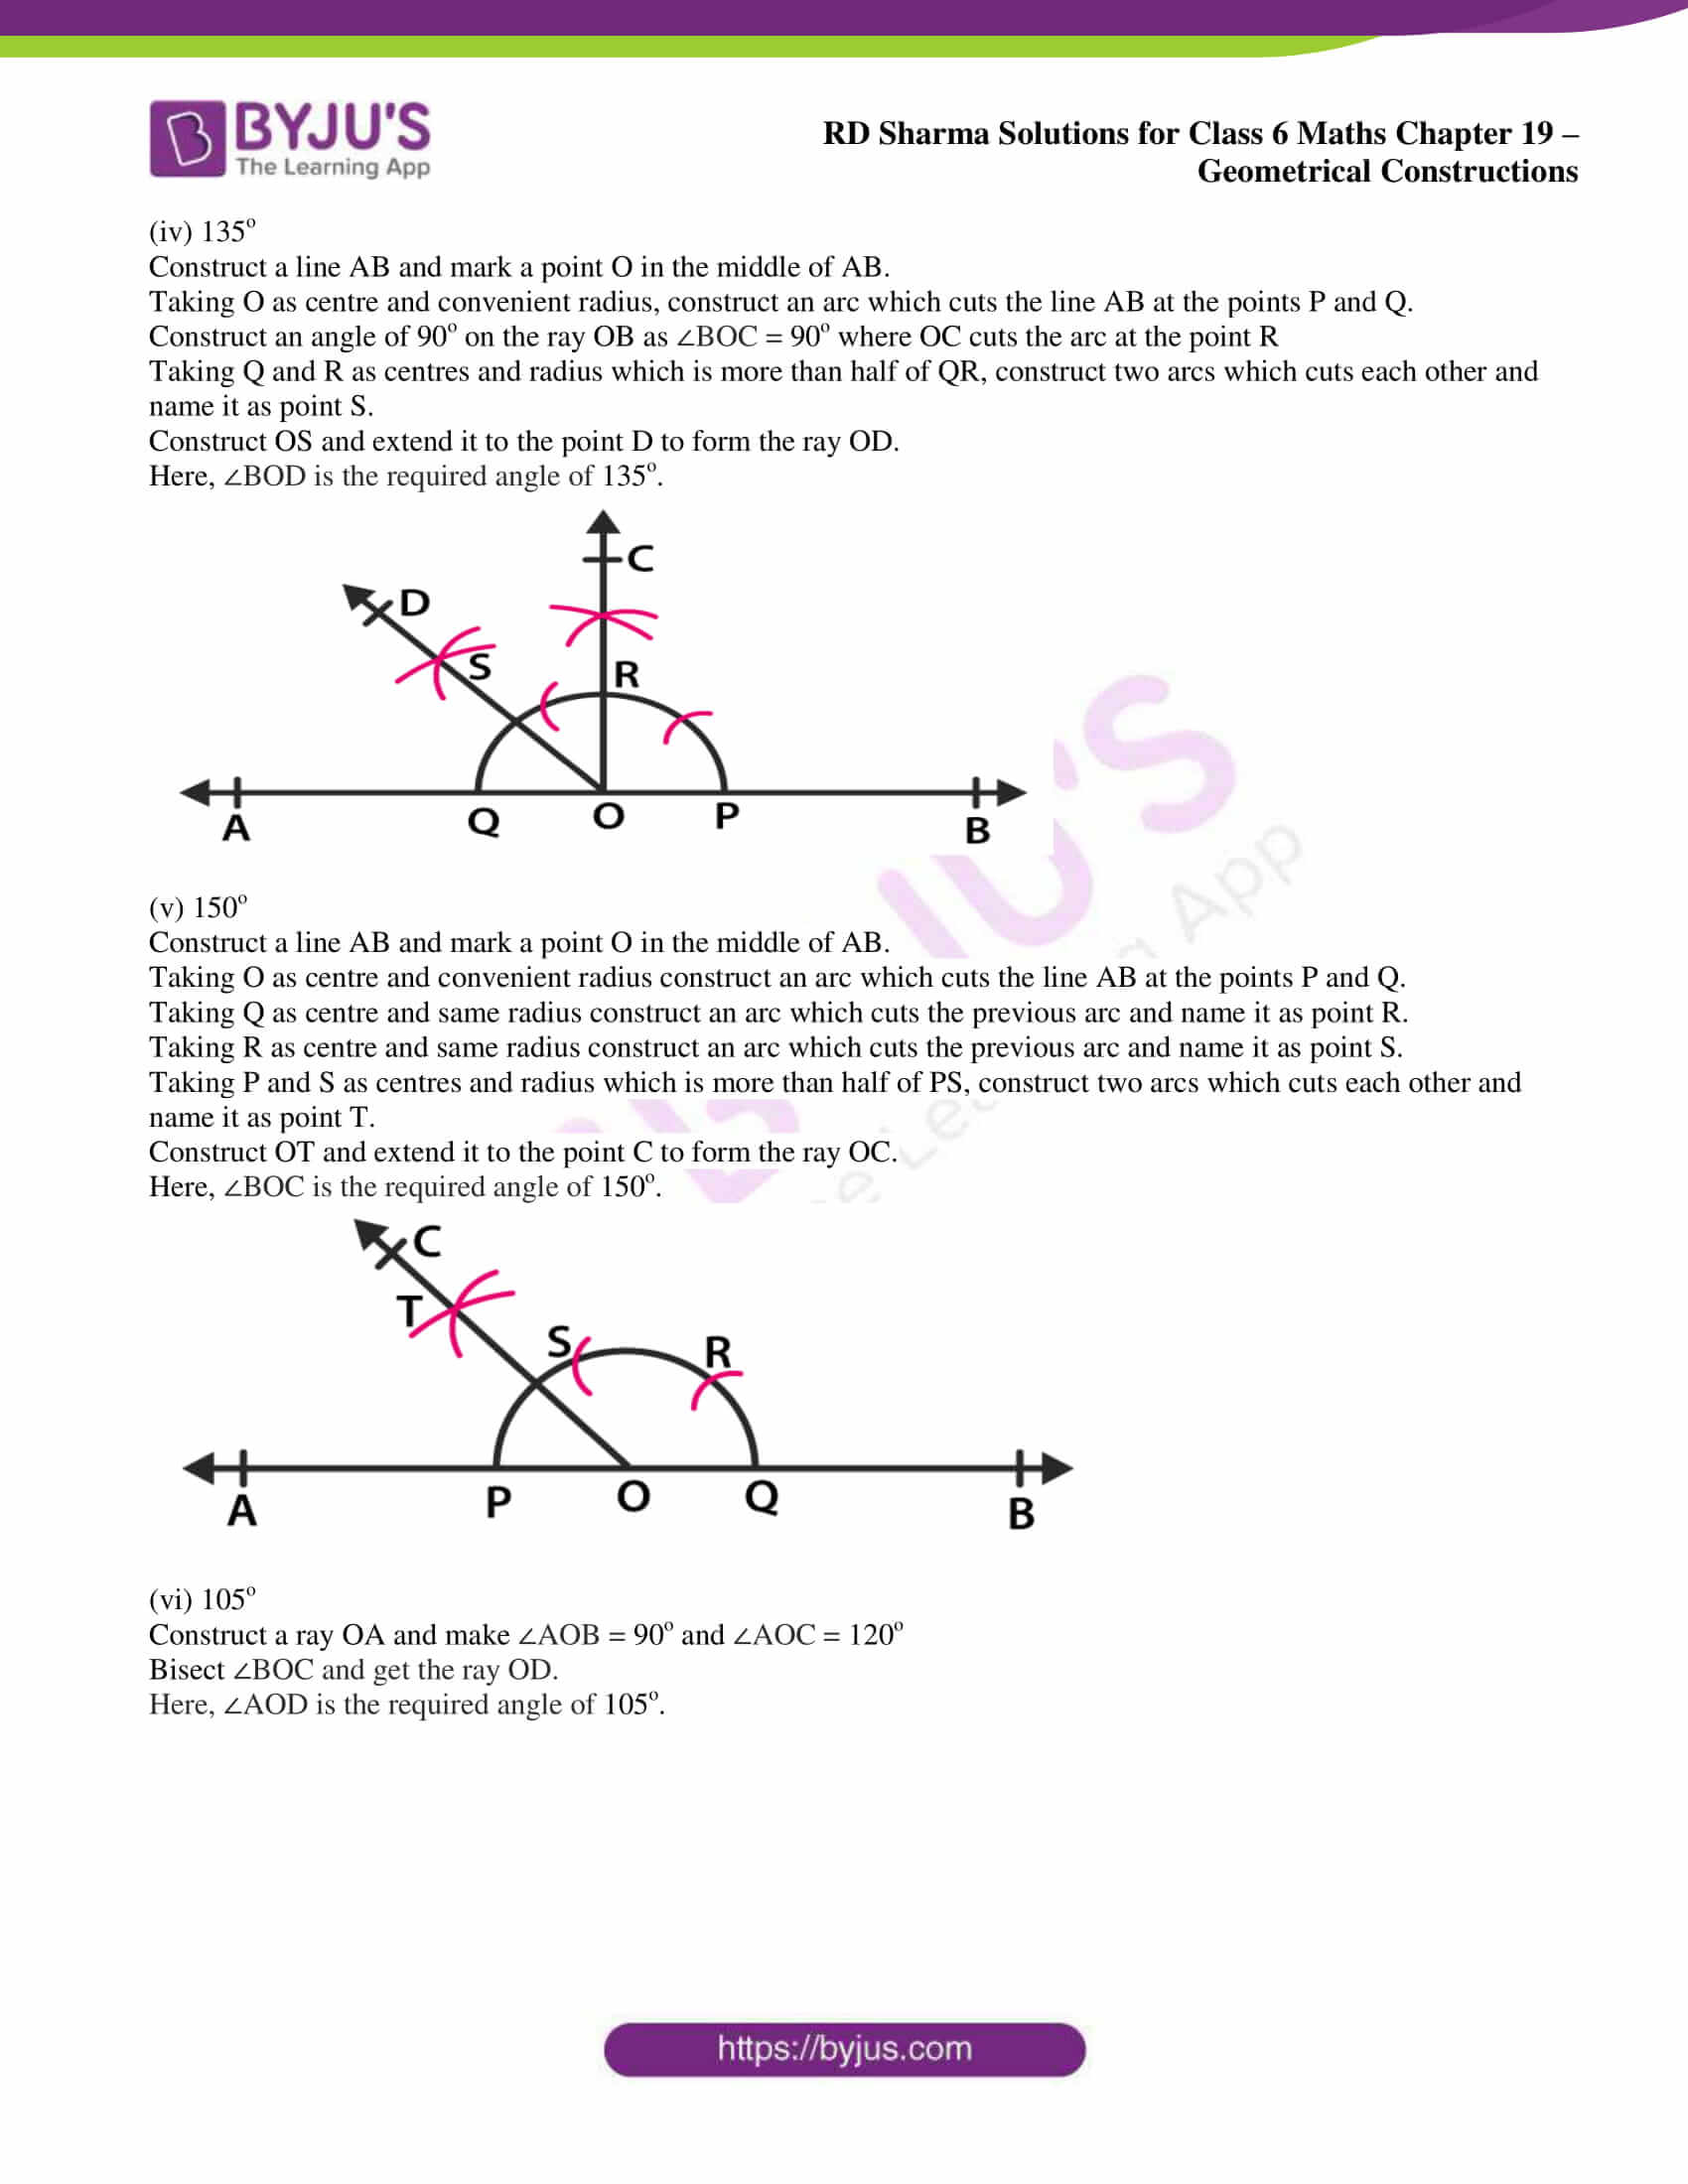 rd sharma solutions nov2020 class 6 maths chapter 19 exercise 6 3